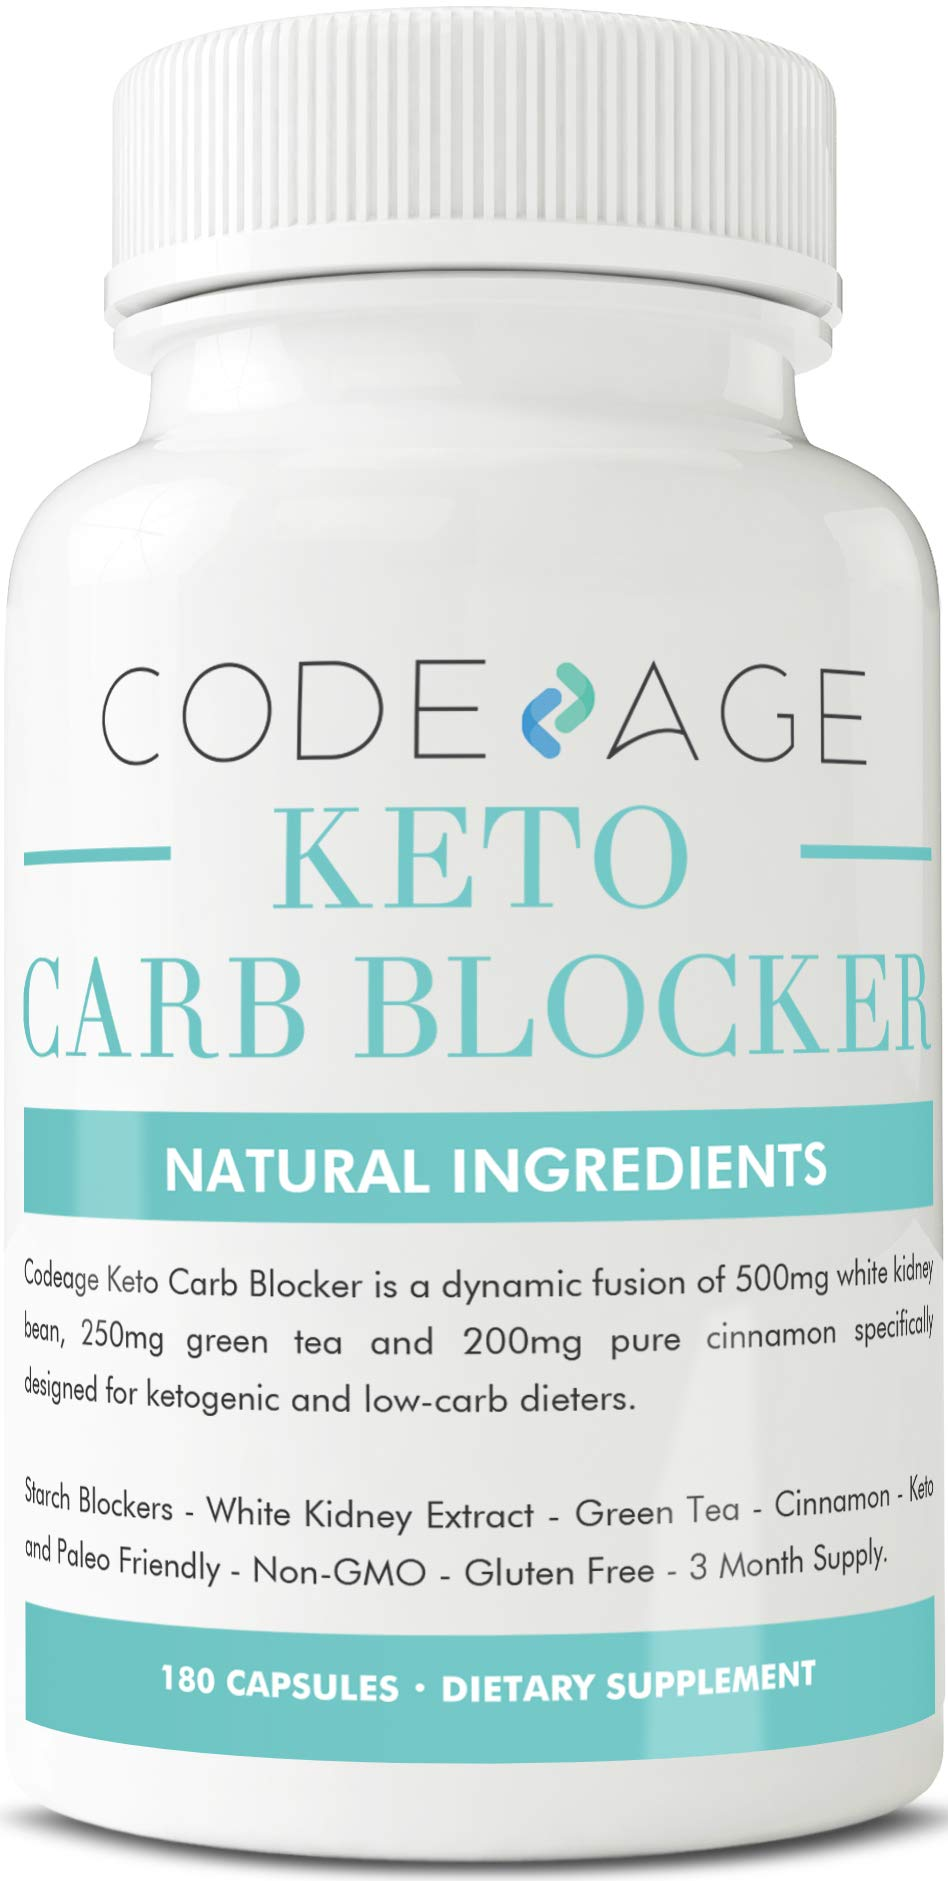 Codeage Keto Carb Blocker Capsules, Nutritional Ketosis with White Kidney Bean Extract, Green Tea Extract, Pure Cinnamon, 180 Capsules by Codeage